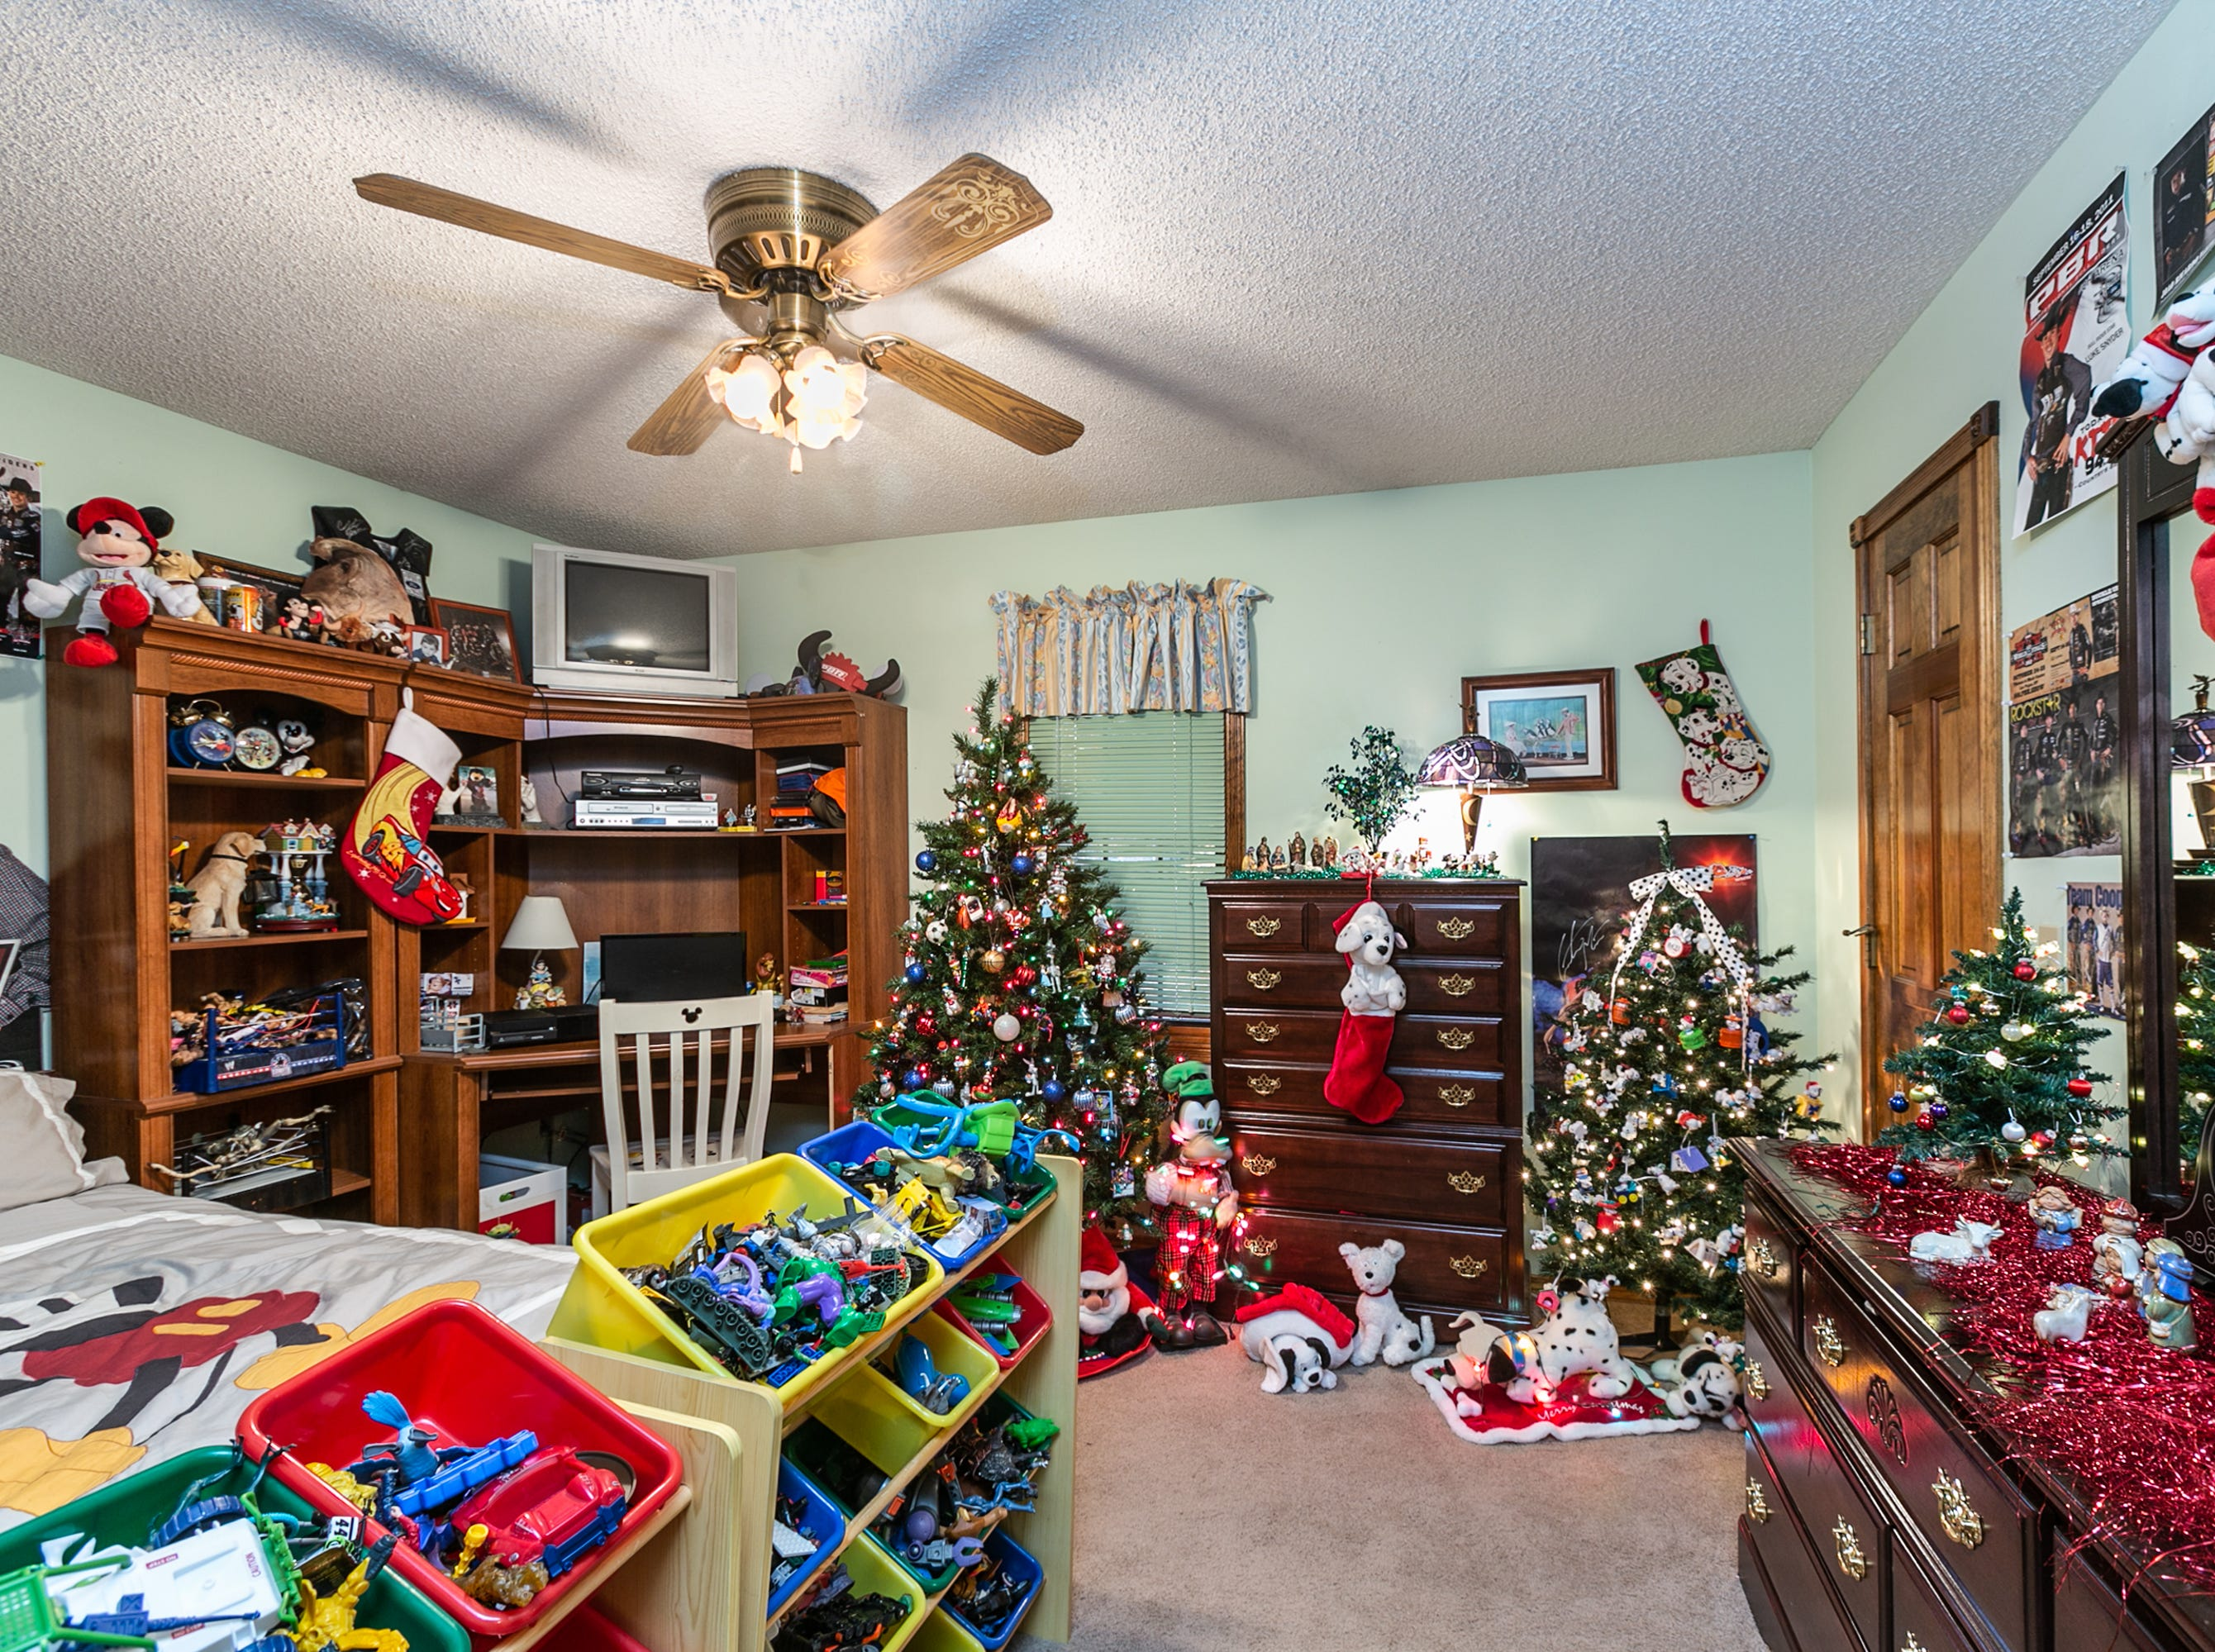 """Donna chose a """"101 Dalmatians"""" theme for the decorations in the room set aside for her grandsons when they spend the night."""